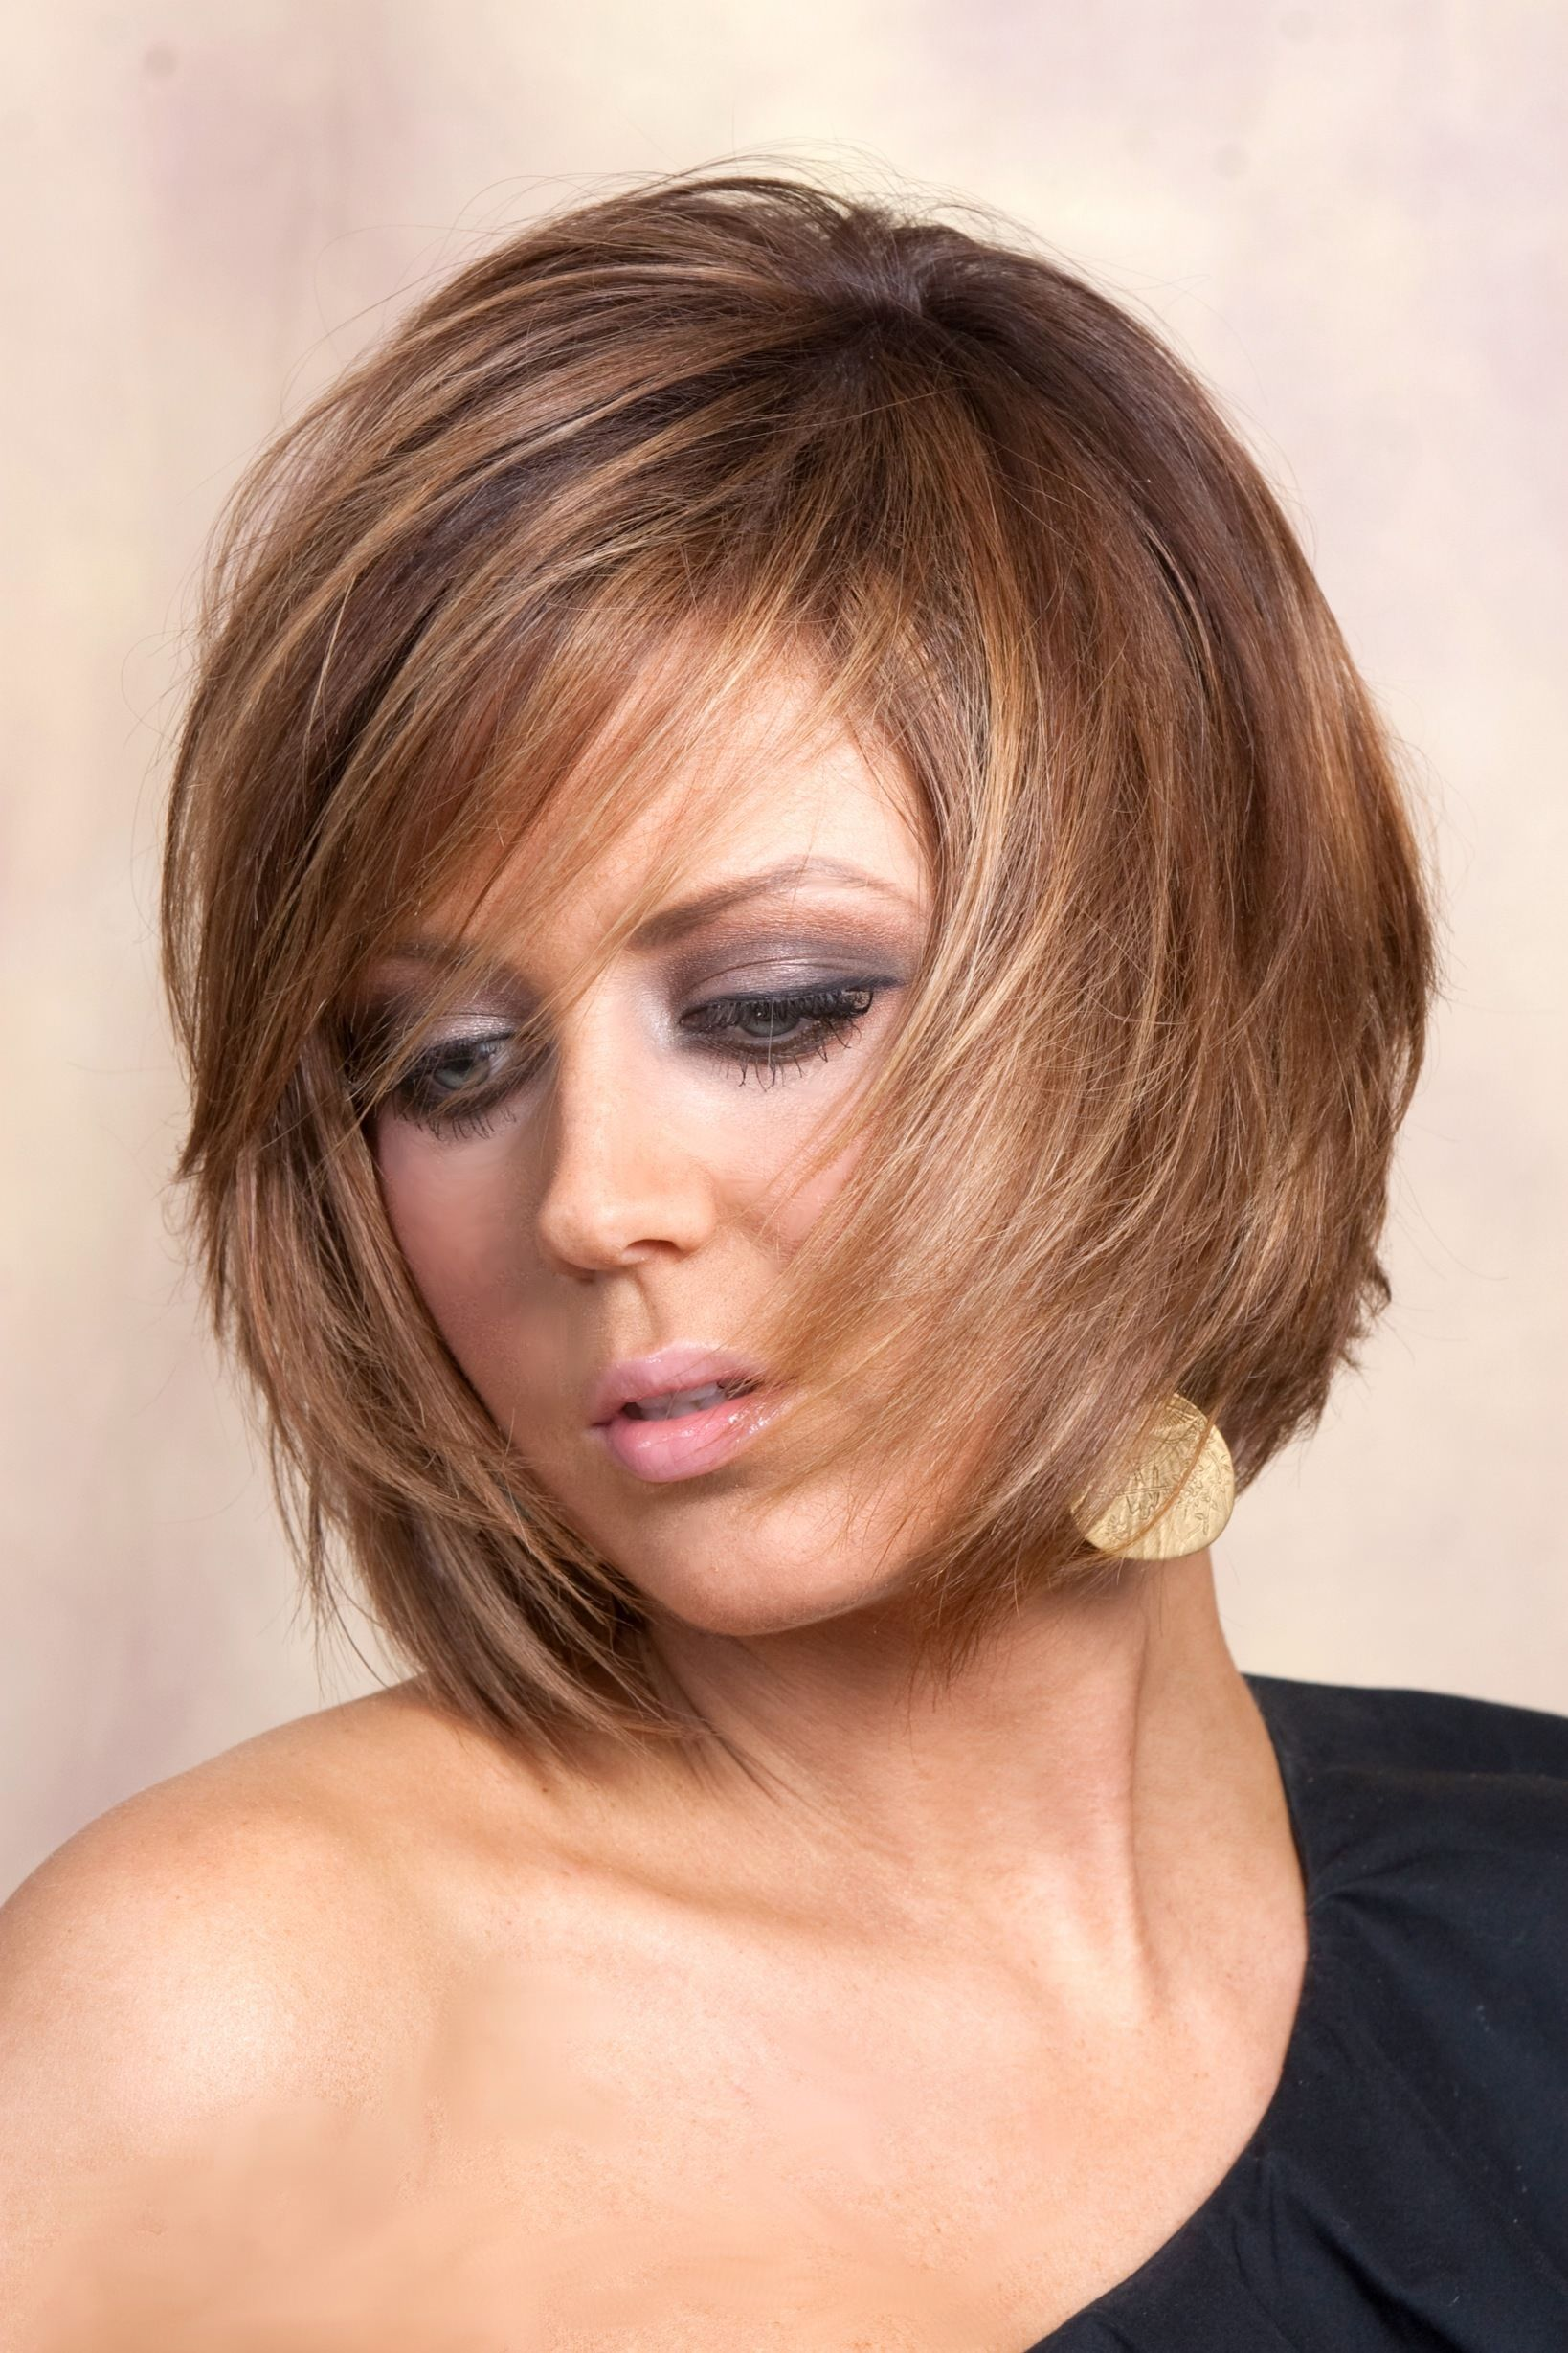 Pictures Of Short Layered Bob Hairstyles 53 with Pictures Of Short Layered  Bob Hairstyles | Short hair with layers, Medium hair styles, Shaggy short  hair